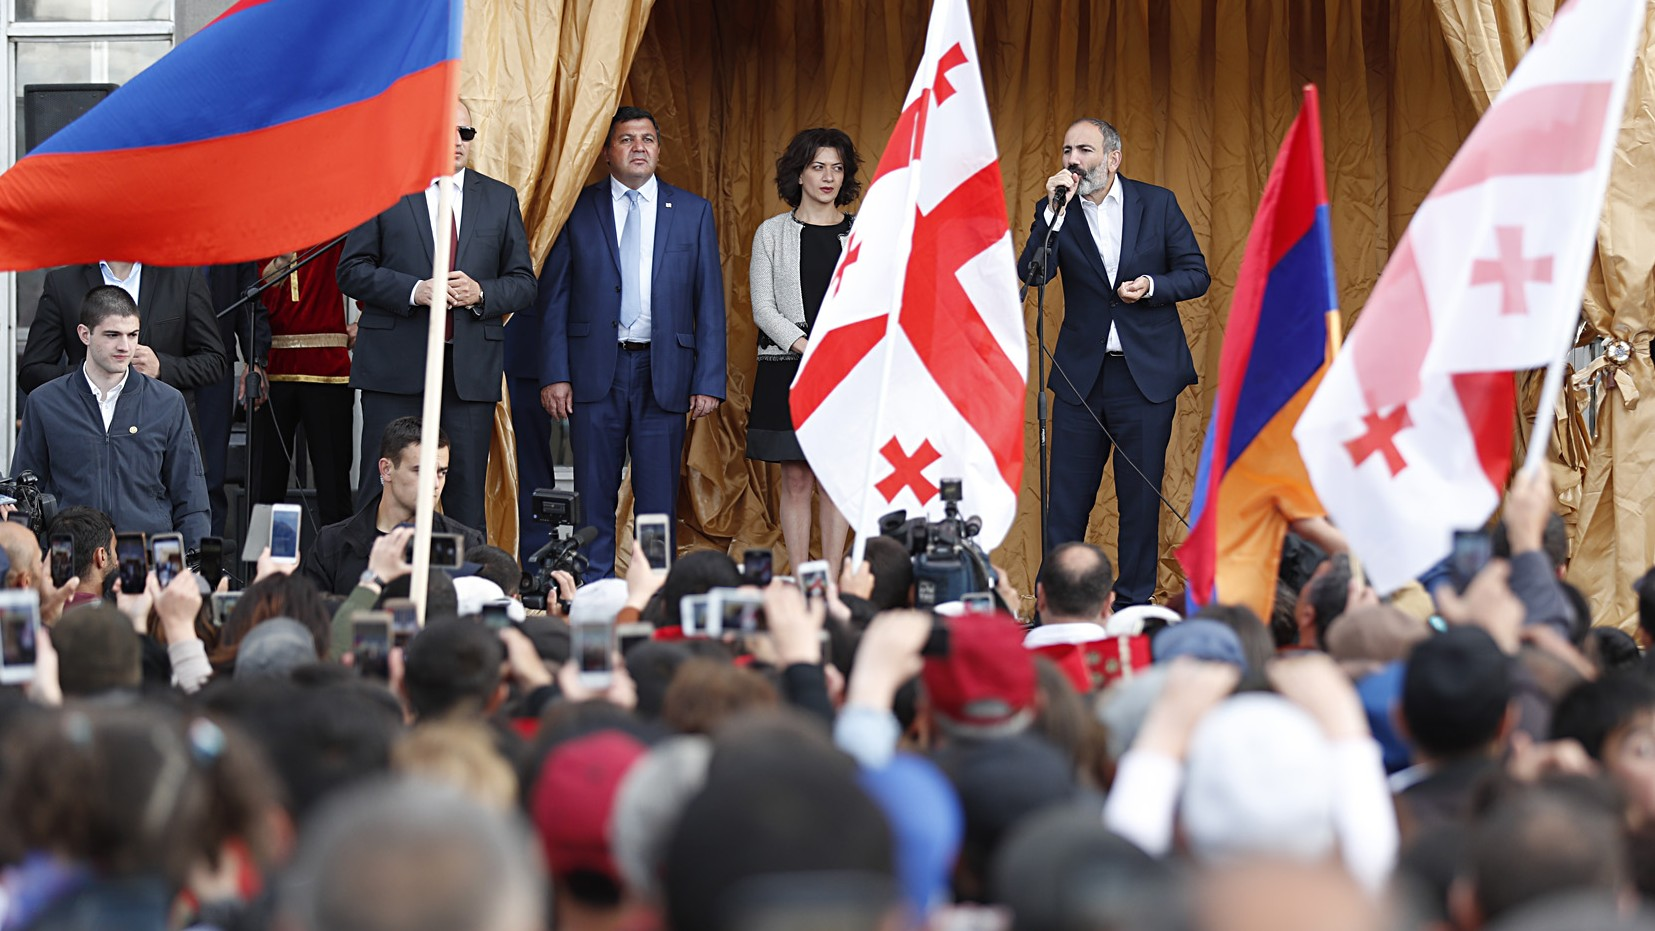 COMMENTARY: A NEW ERA BETWEEN ARMENIA AND GEORGIA, OR NEW TENSIONS?